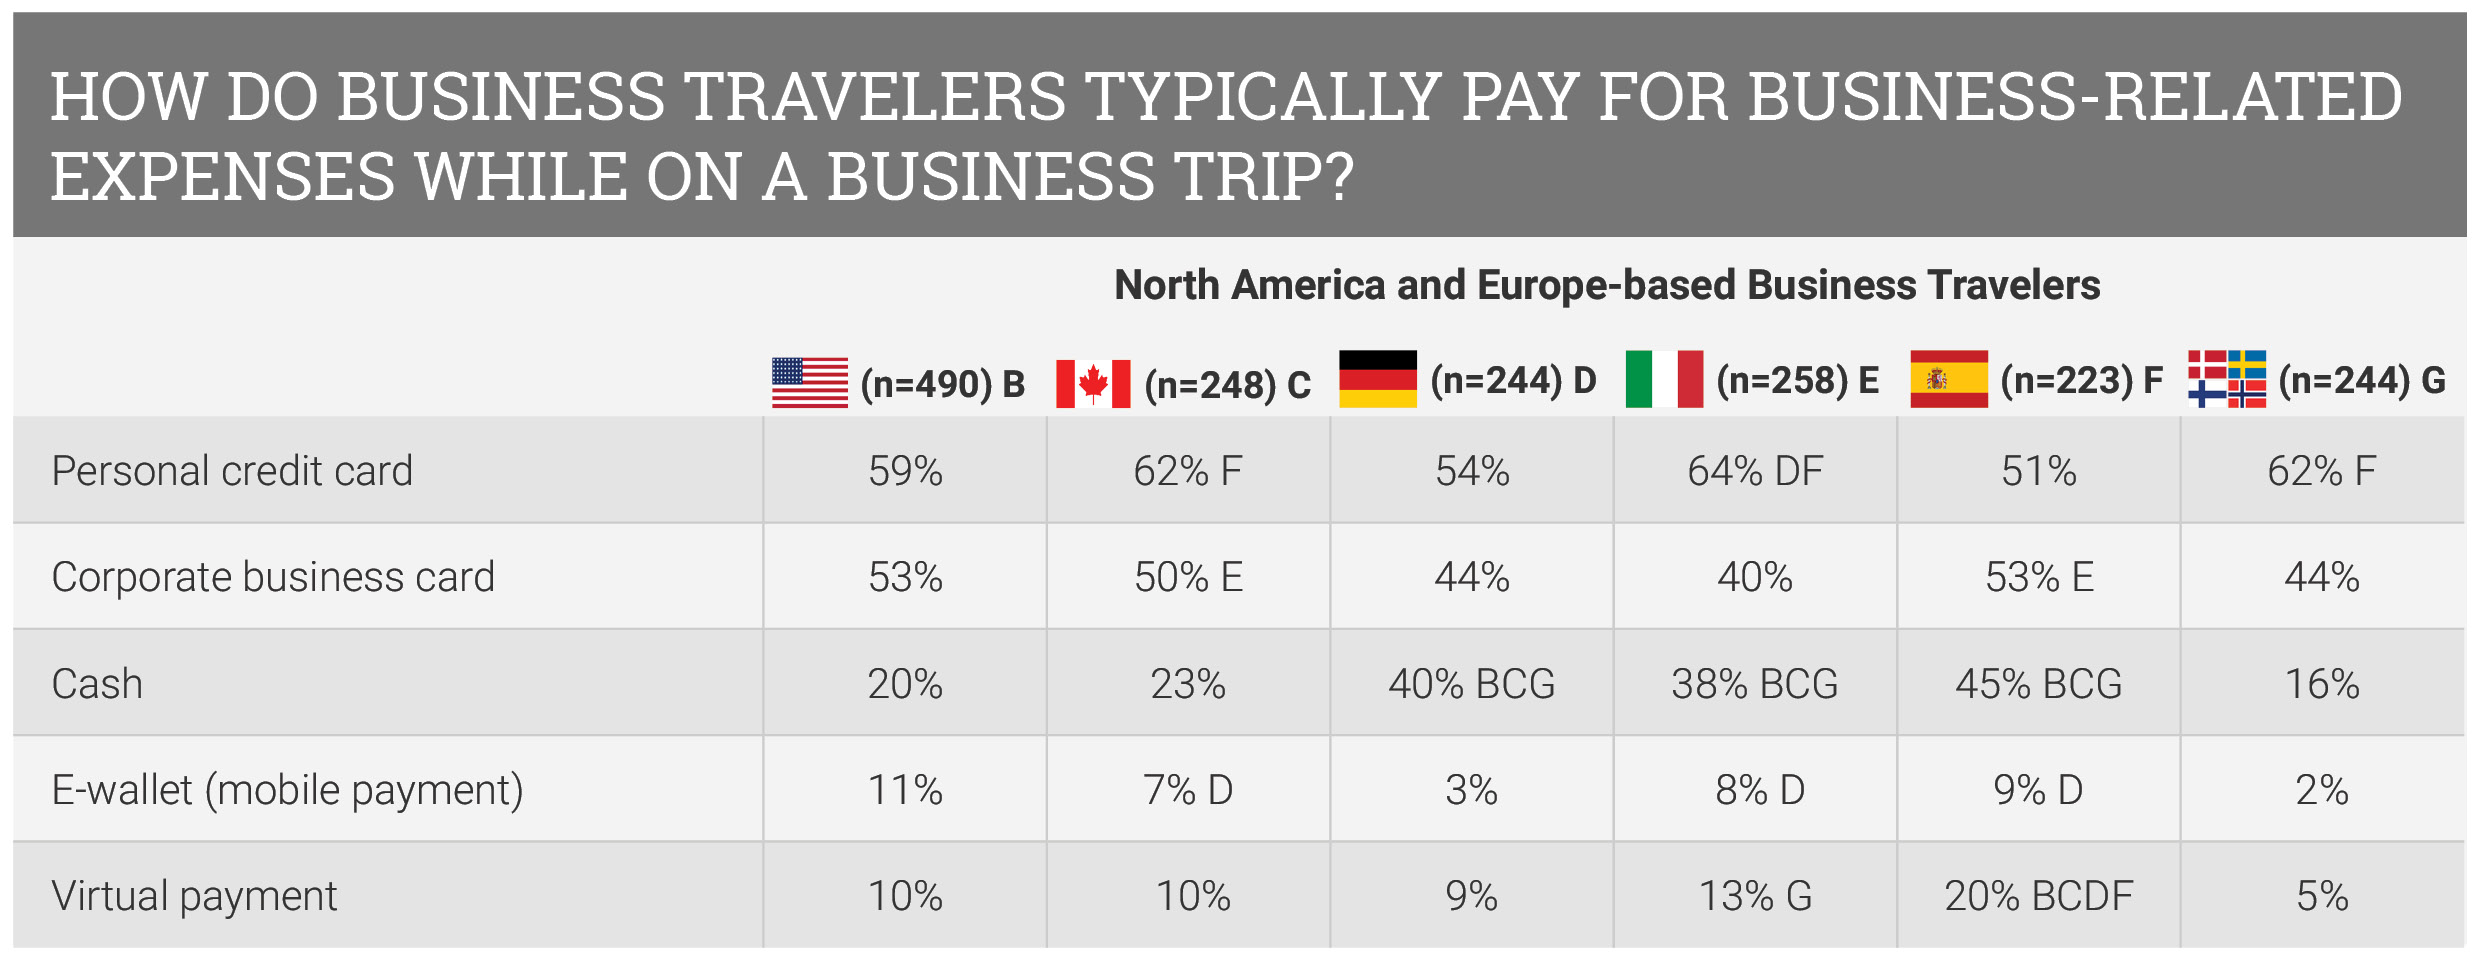 how-do-business-travelers-typically-pay